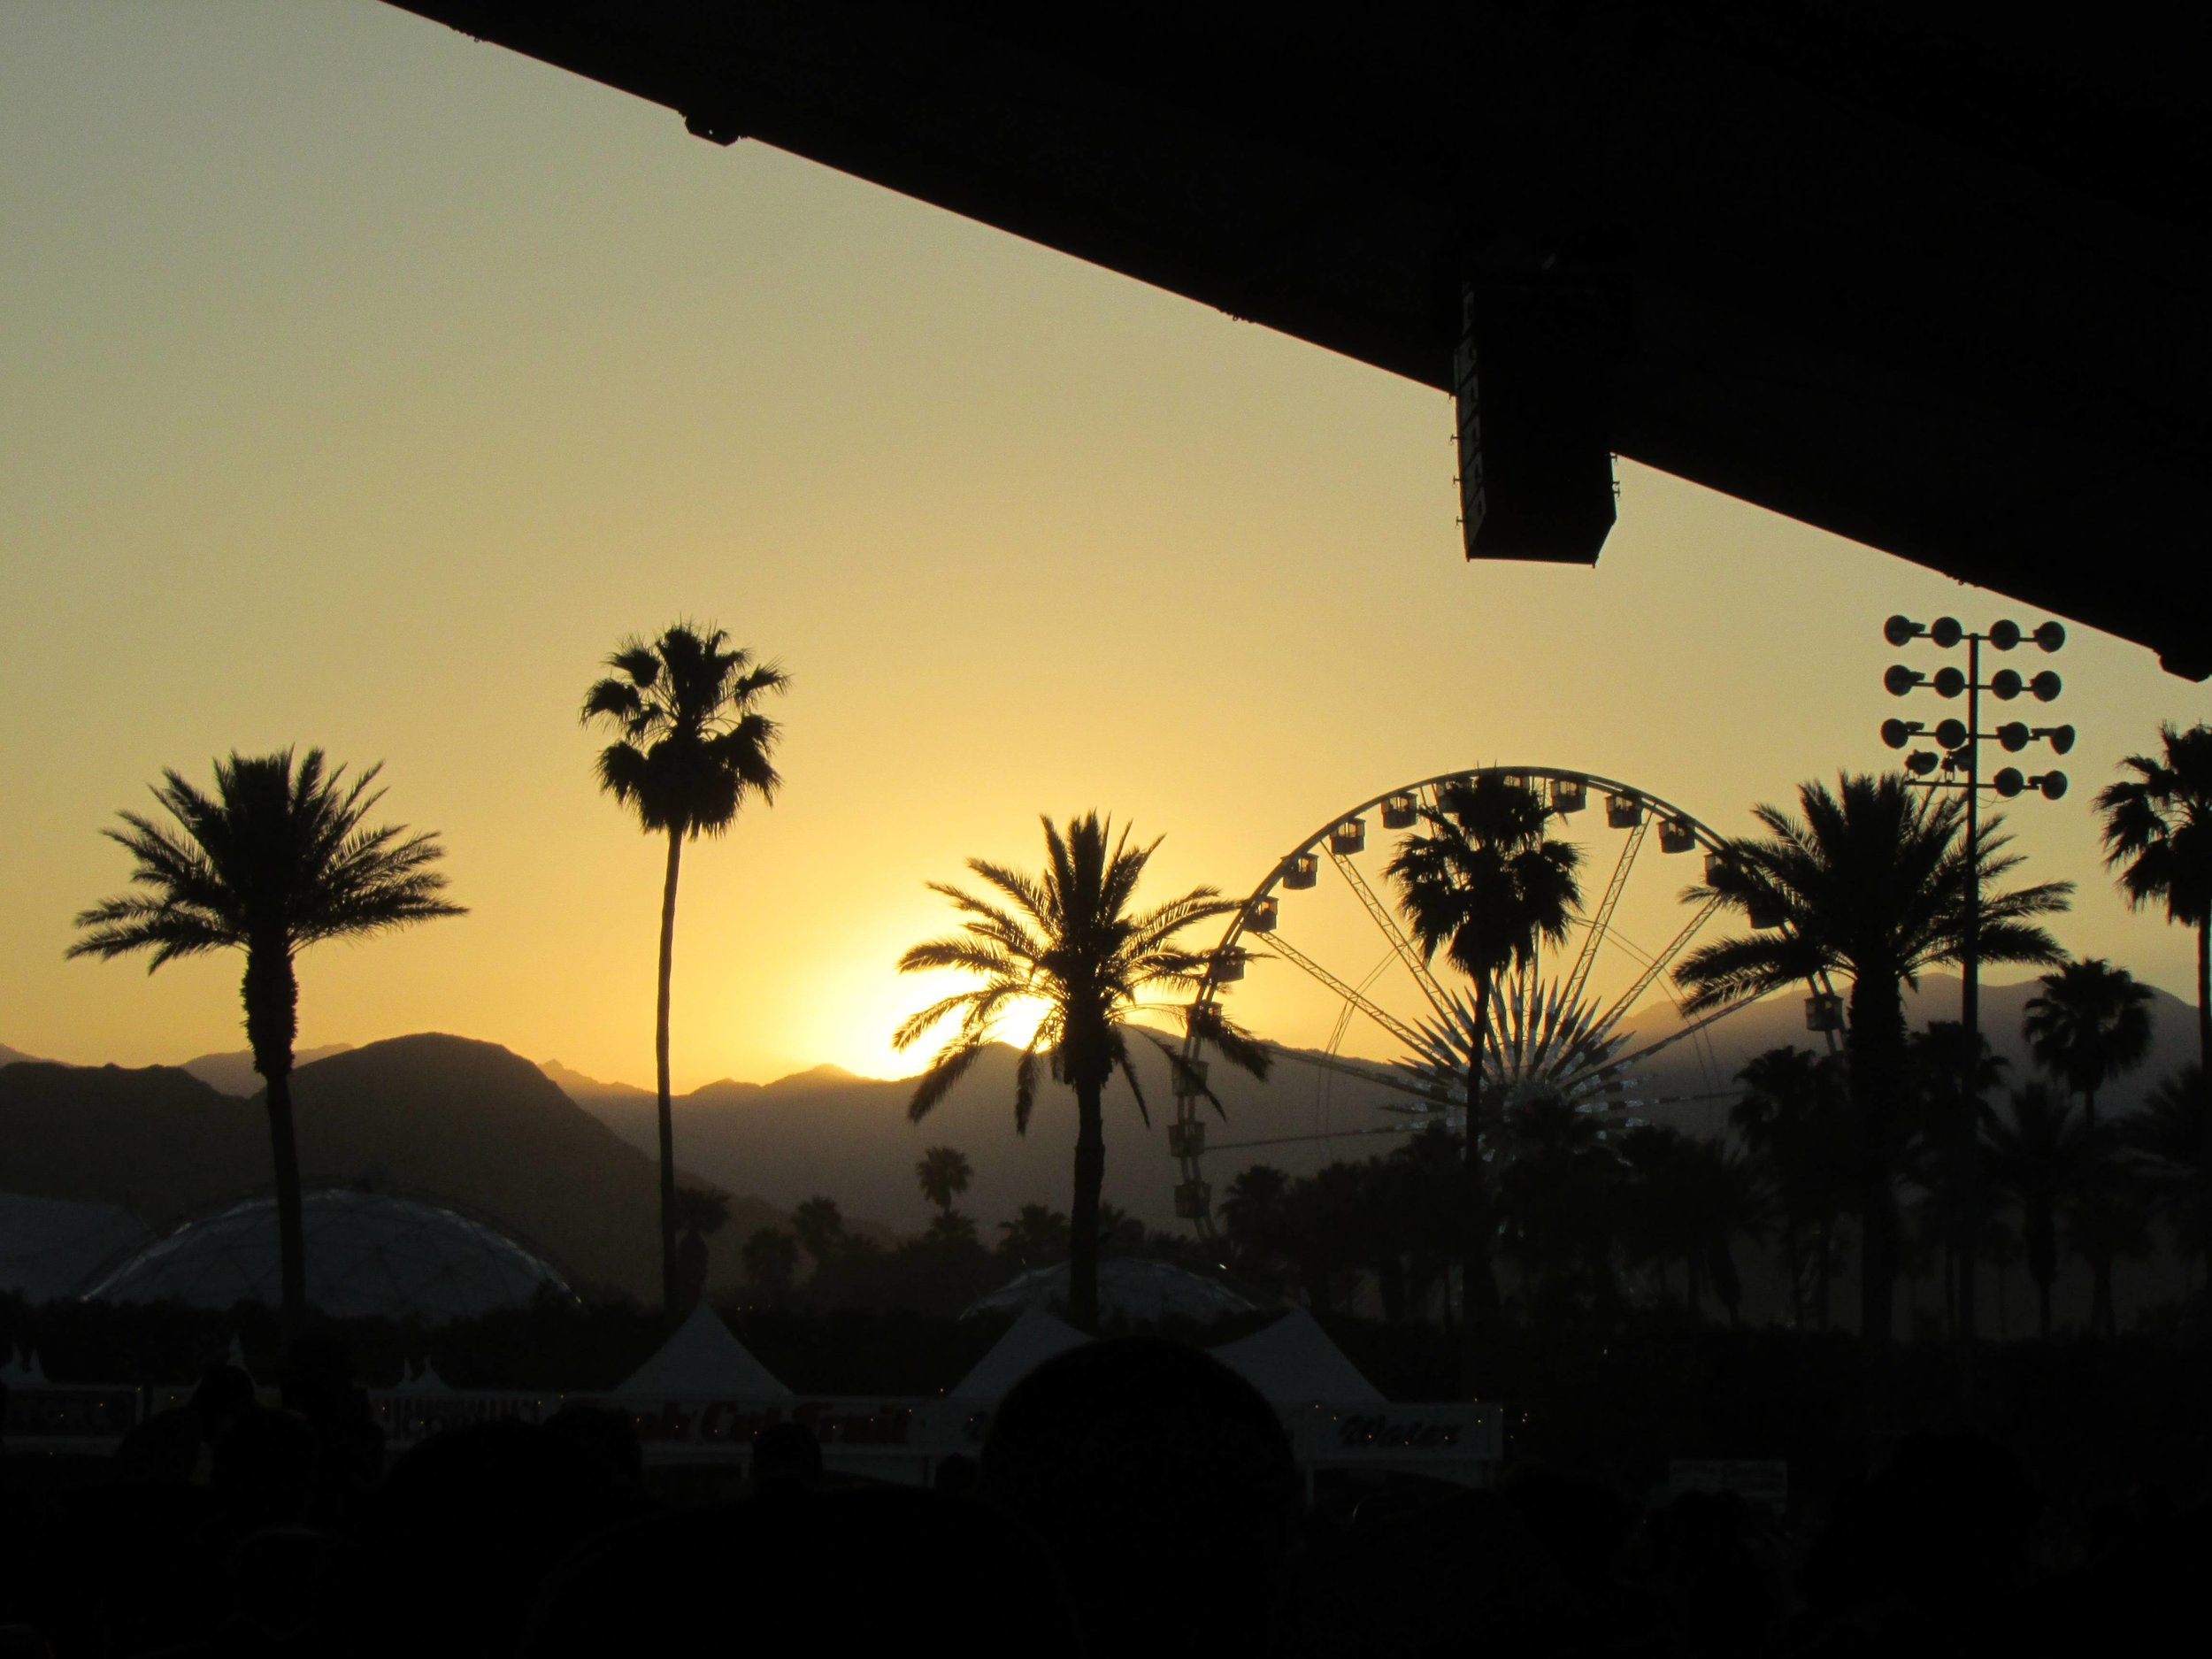 9 - The Coachella skyline over sunset.JPG